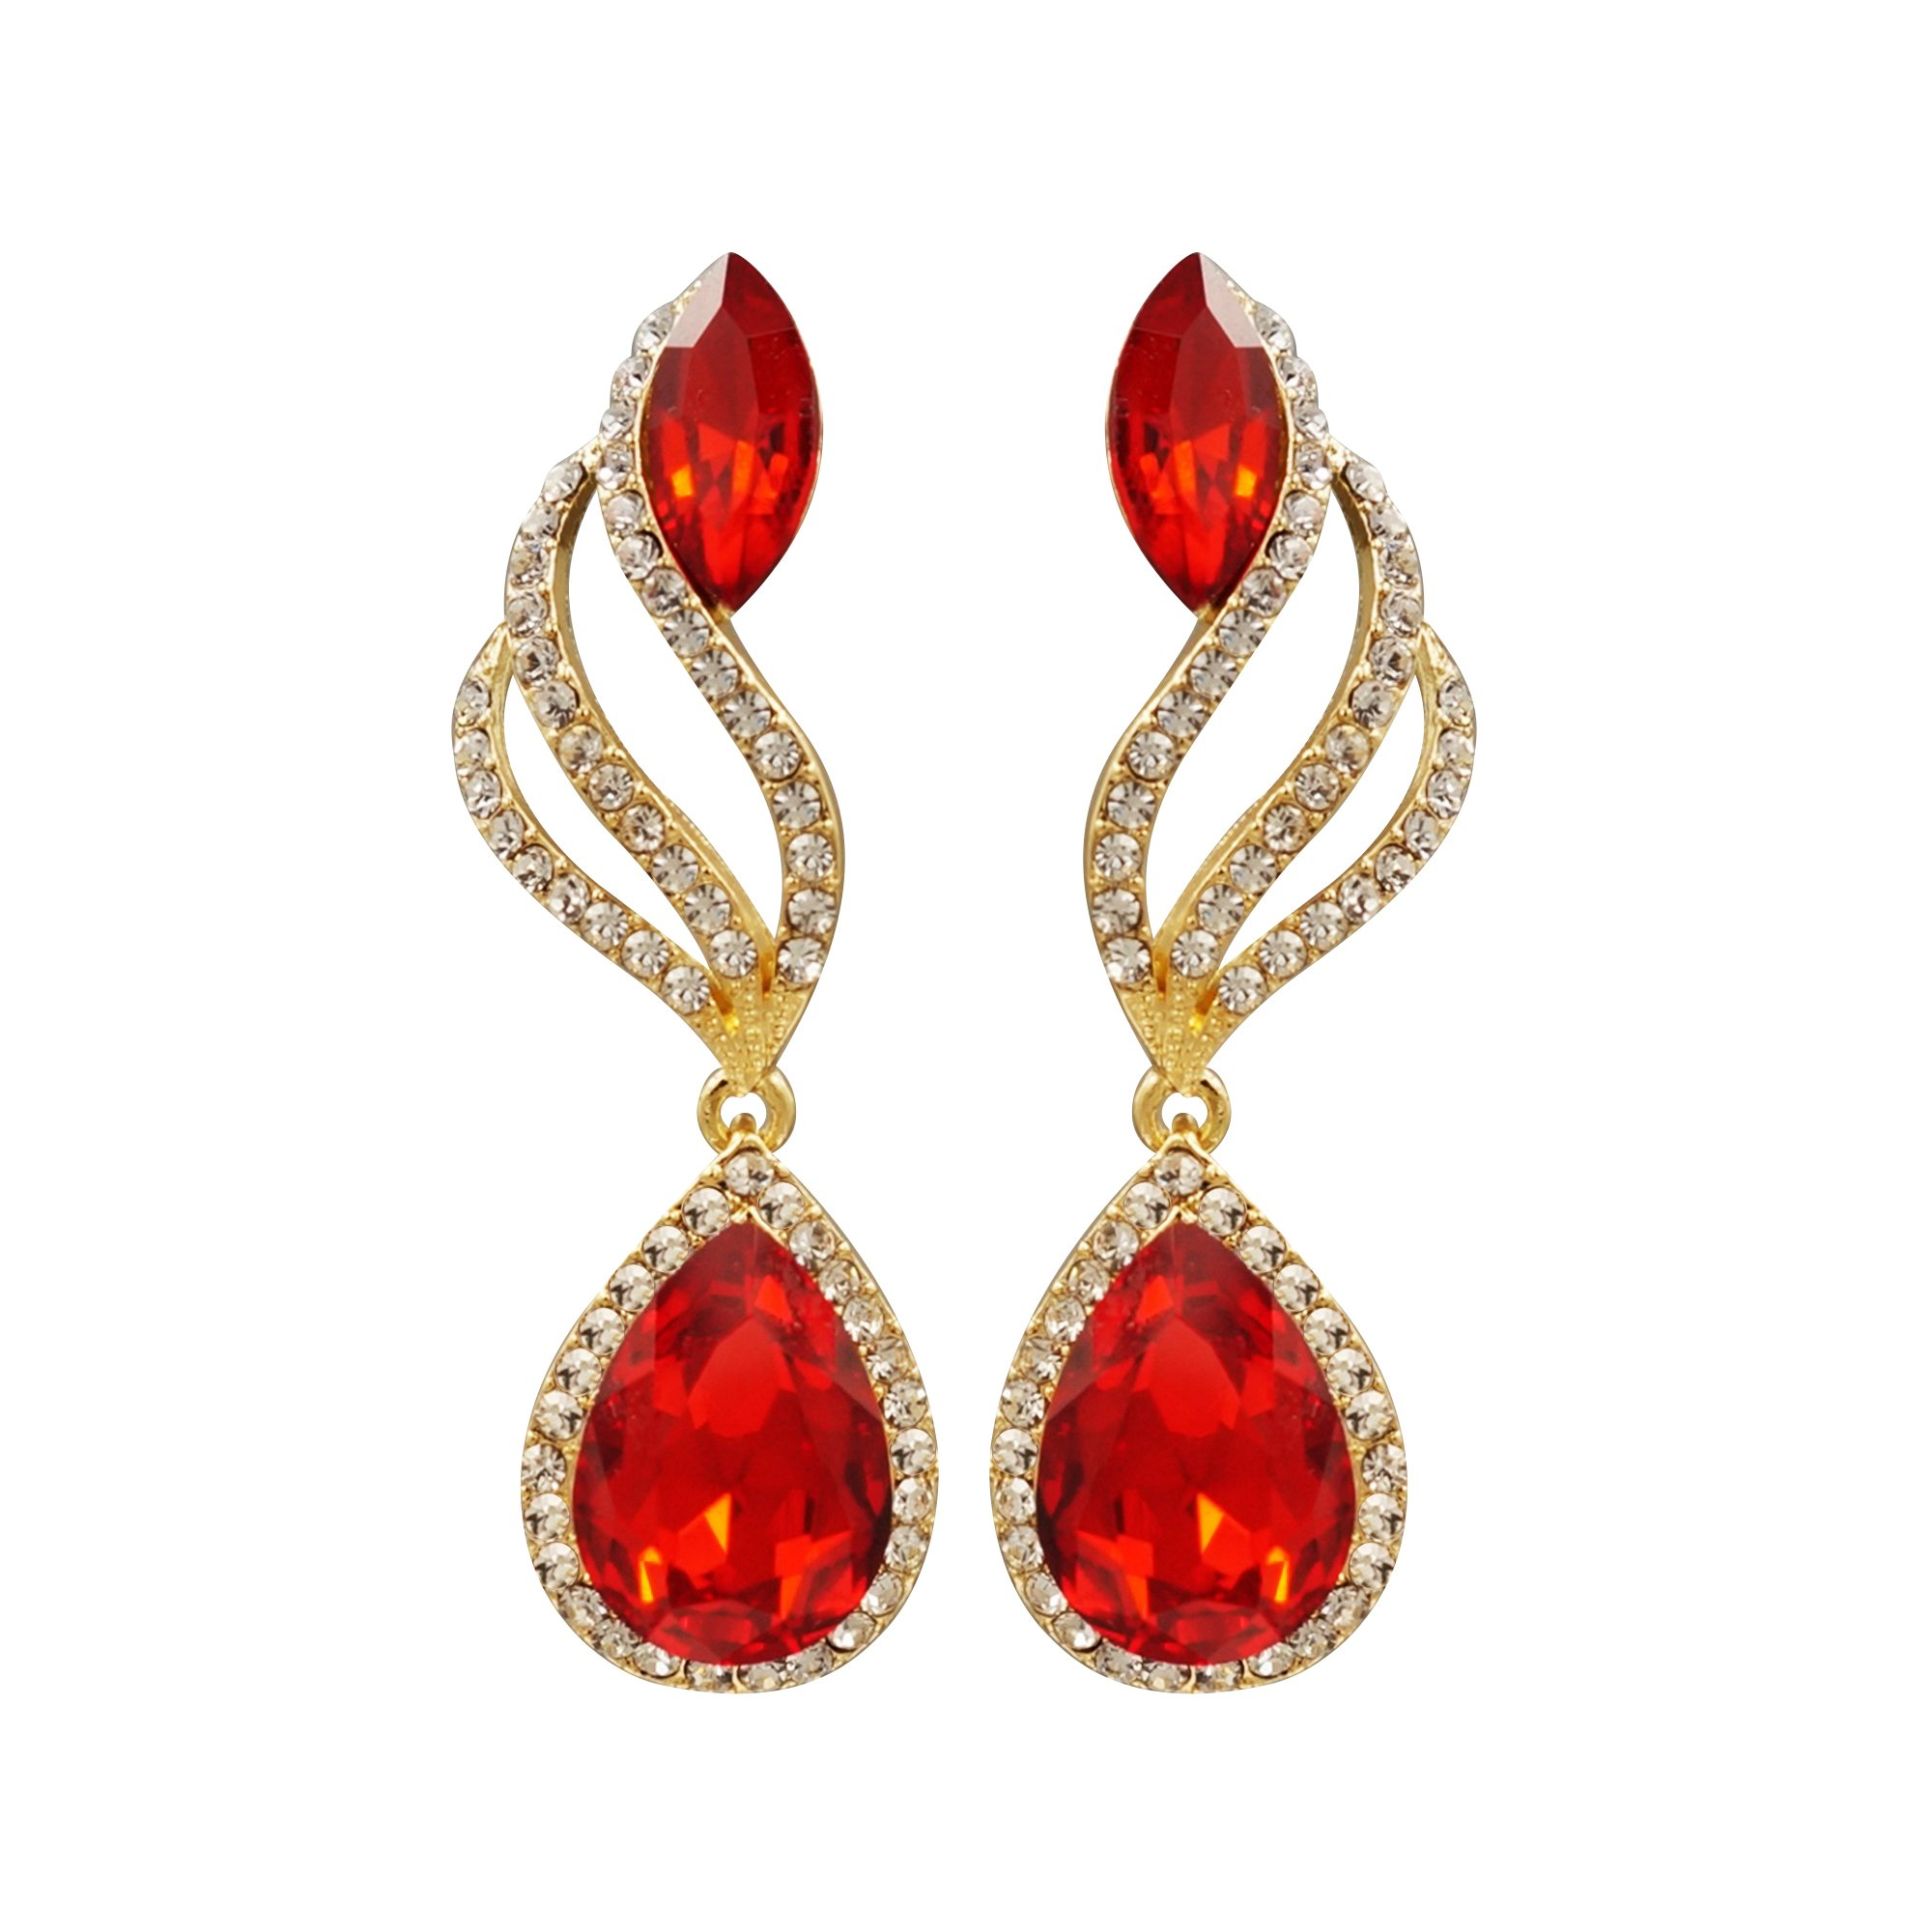 Iris Island Austrian Crystal Rhinestone Teardrop Red Dangle Earrings for Proms Weddings Party, Gold Tone